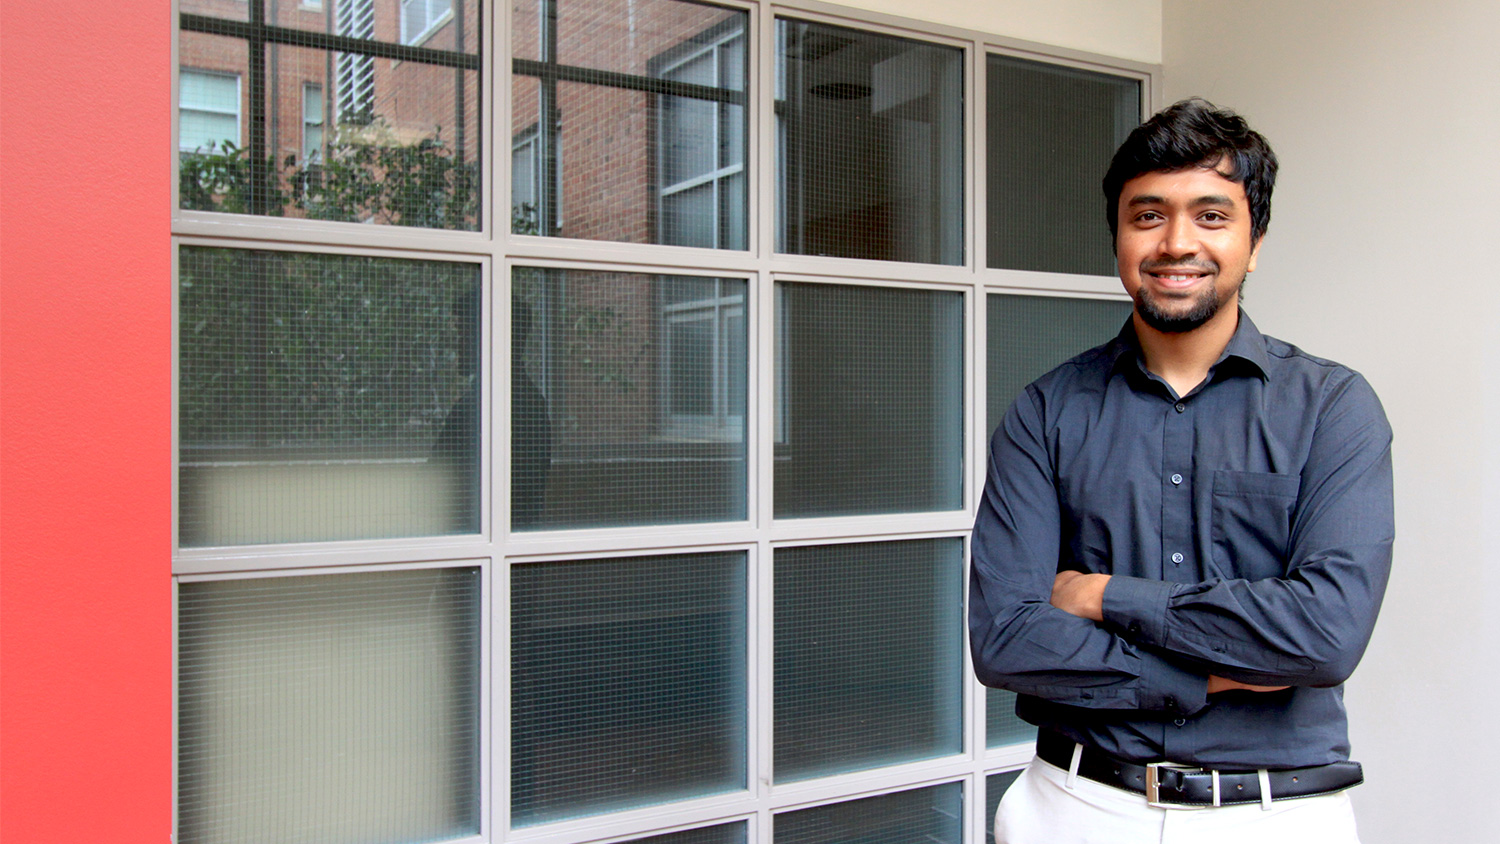 Rakesh Ravi, data scientist in the Center for Innovation Management Studies at the NC State Poole College of Management